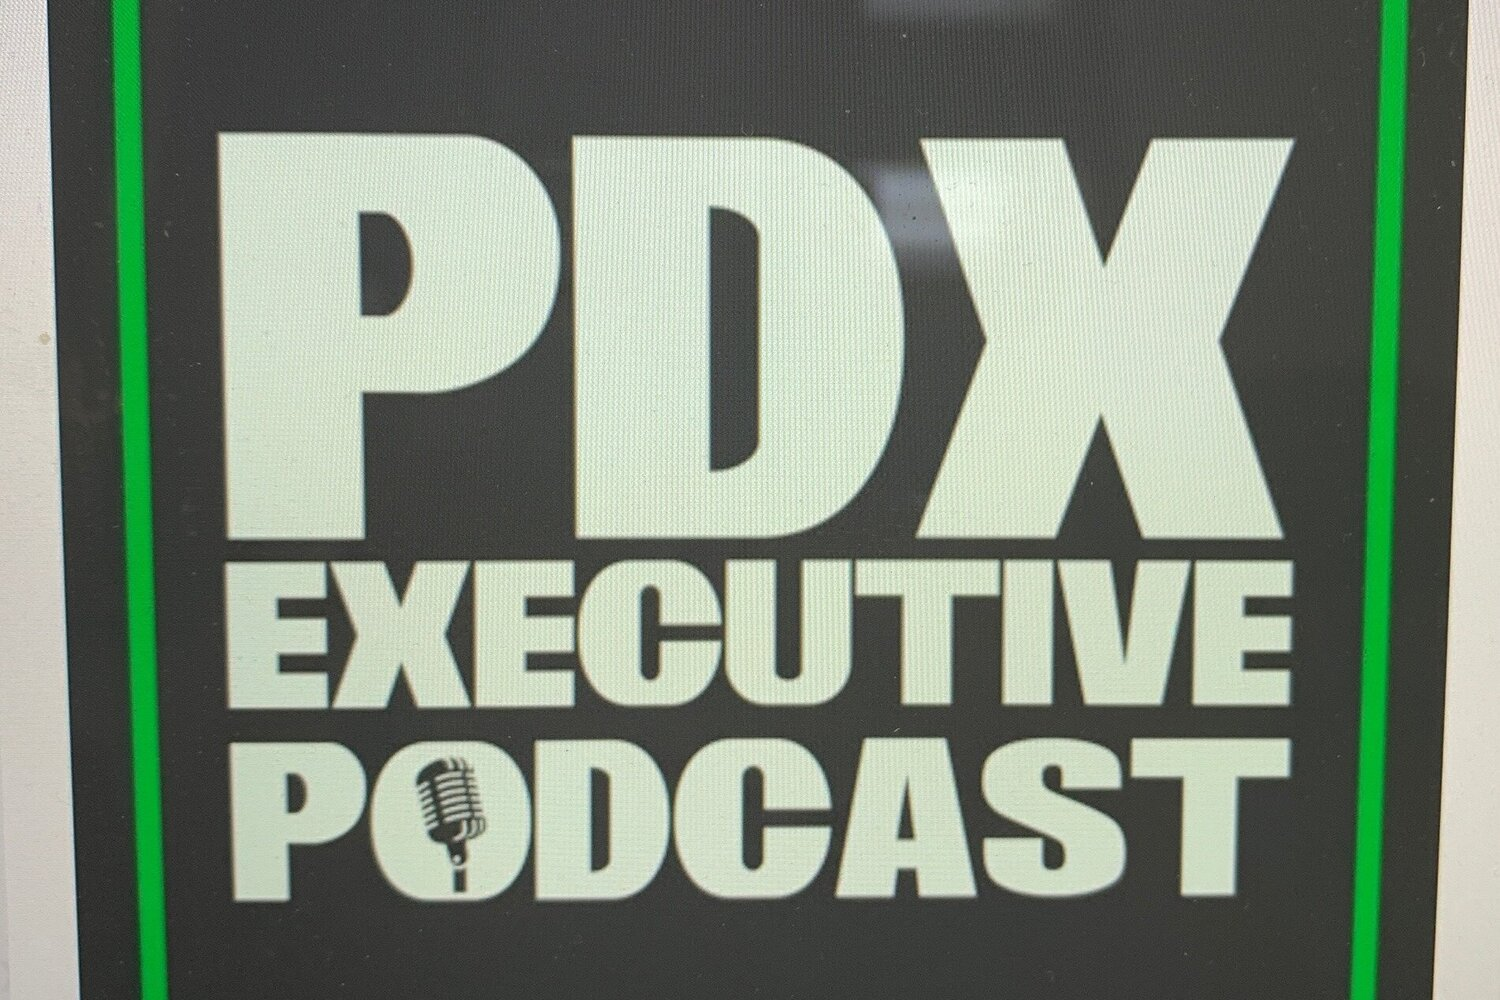 PDX Executive Podcast chats with founder Allie Roth about Portland's foster care system. - July 2019